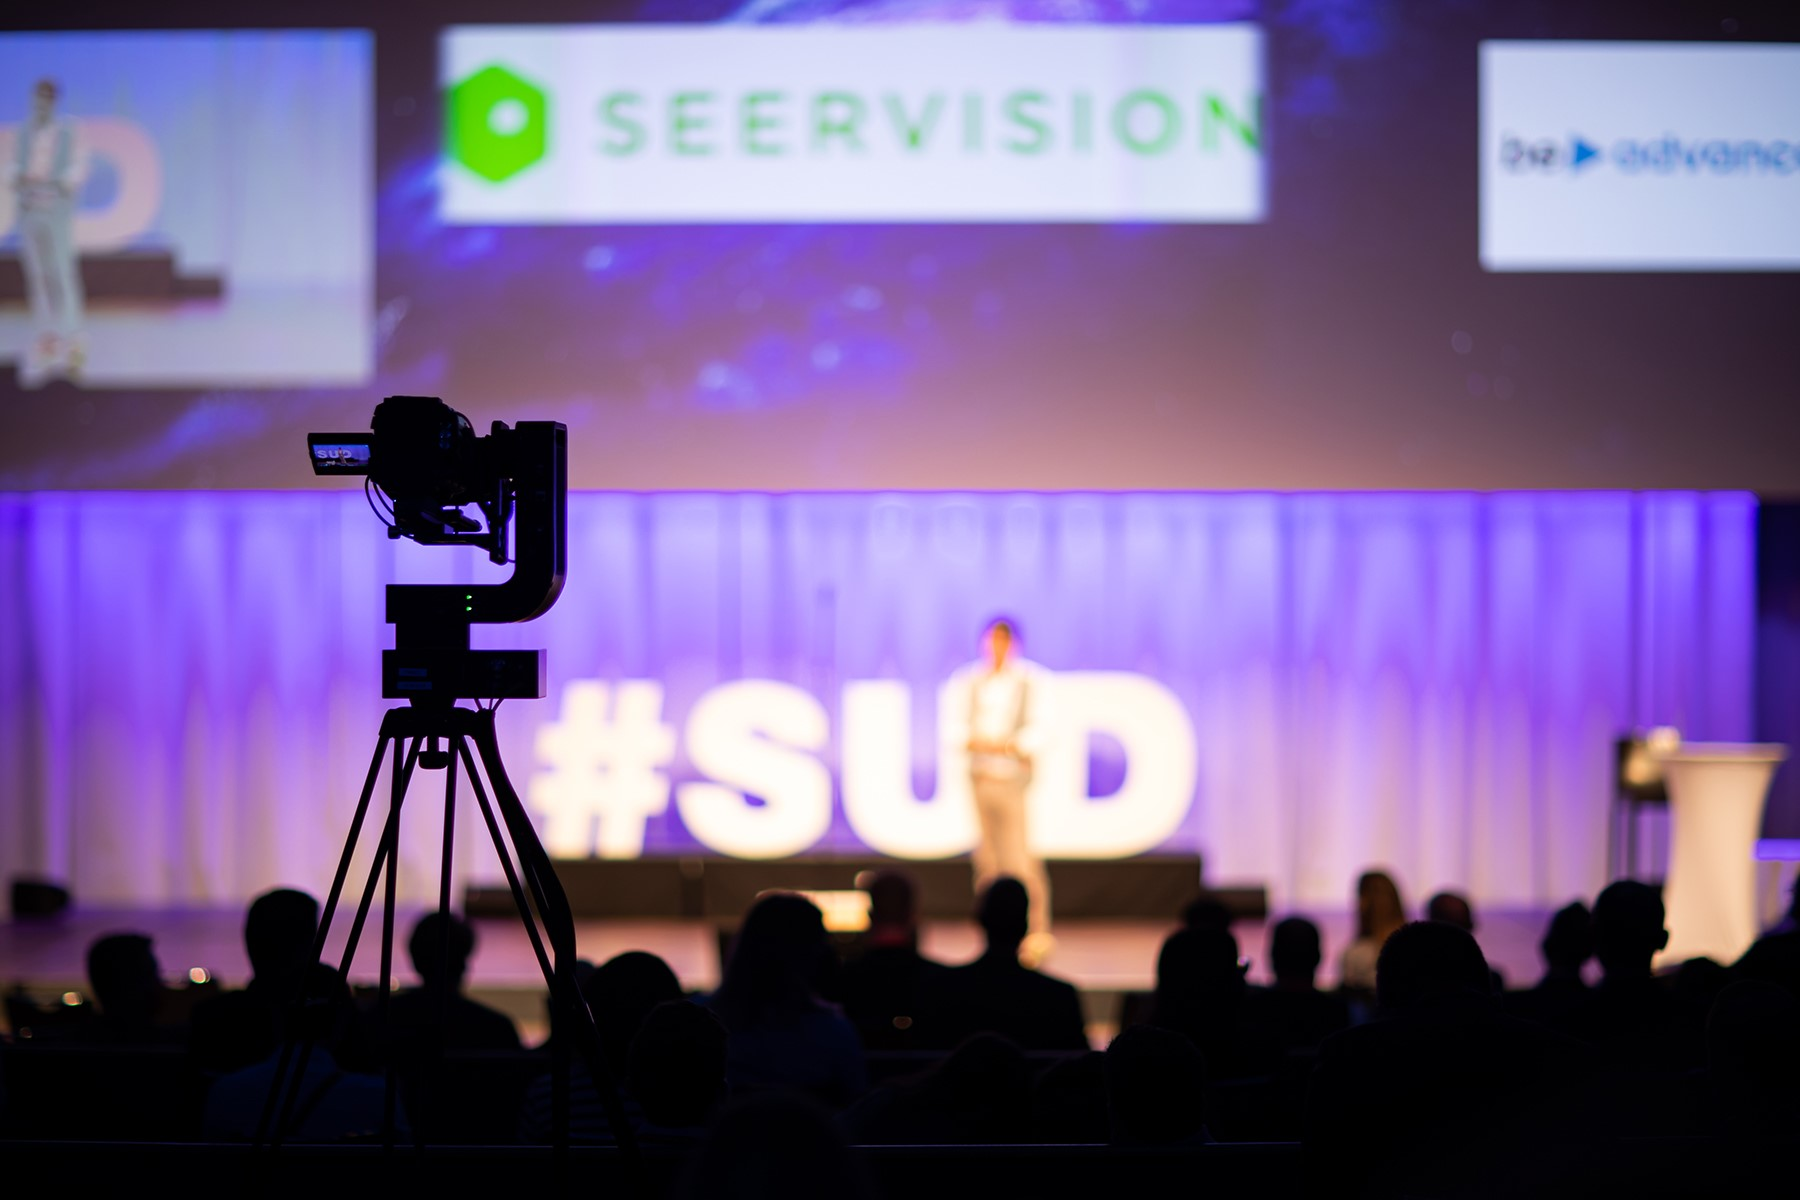 Seervision-robotic-head-Pauli-in-action-during-streaming-of-event-1.jpeg